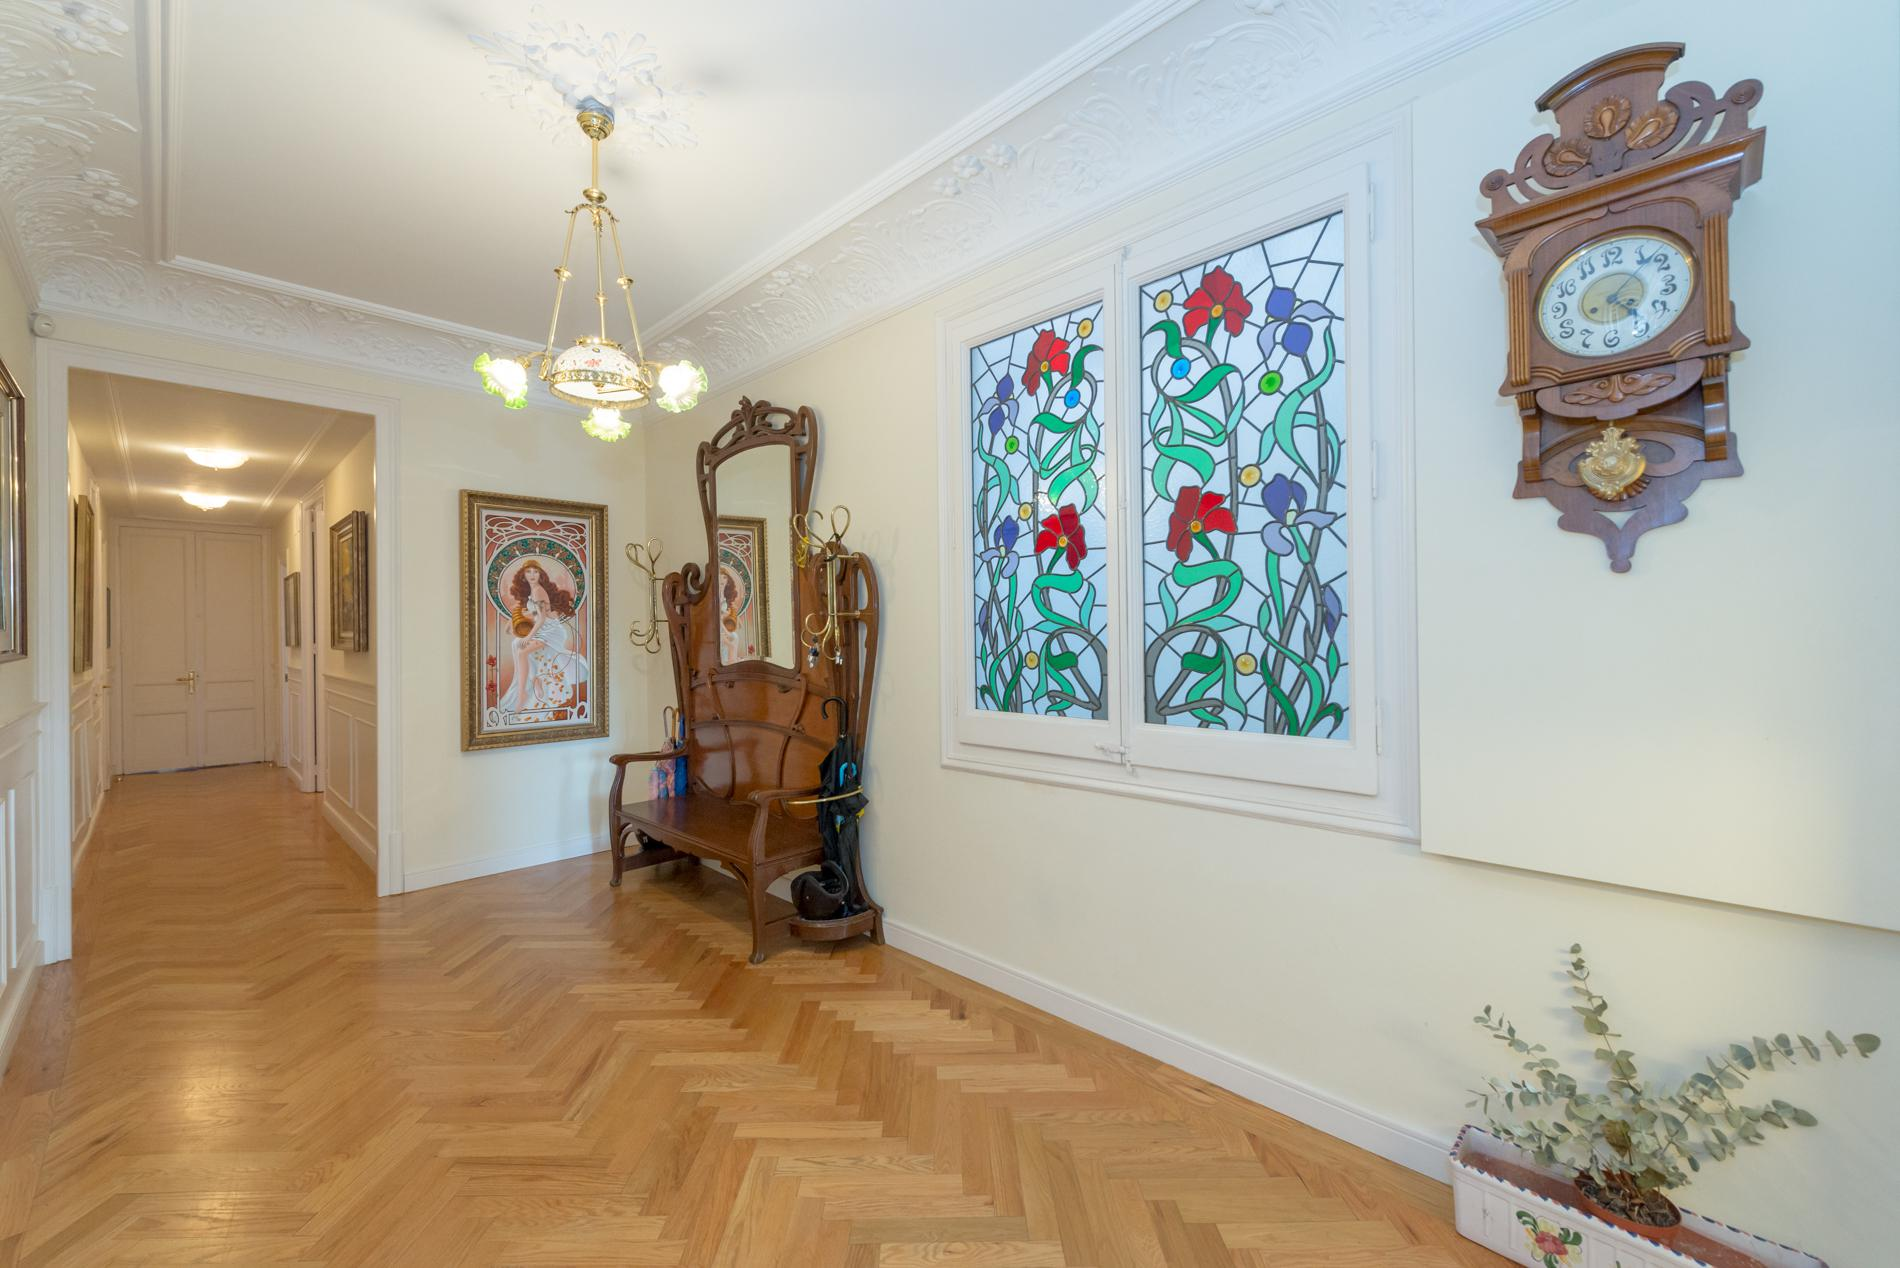 174066 Flat for sale in Eixample, Antiga Esquerre Eixample 1